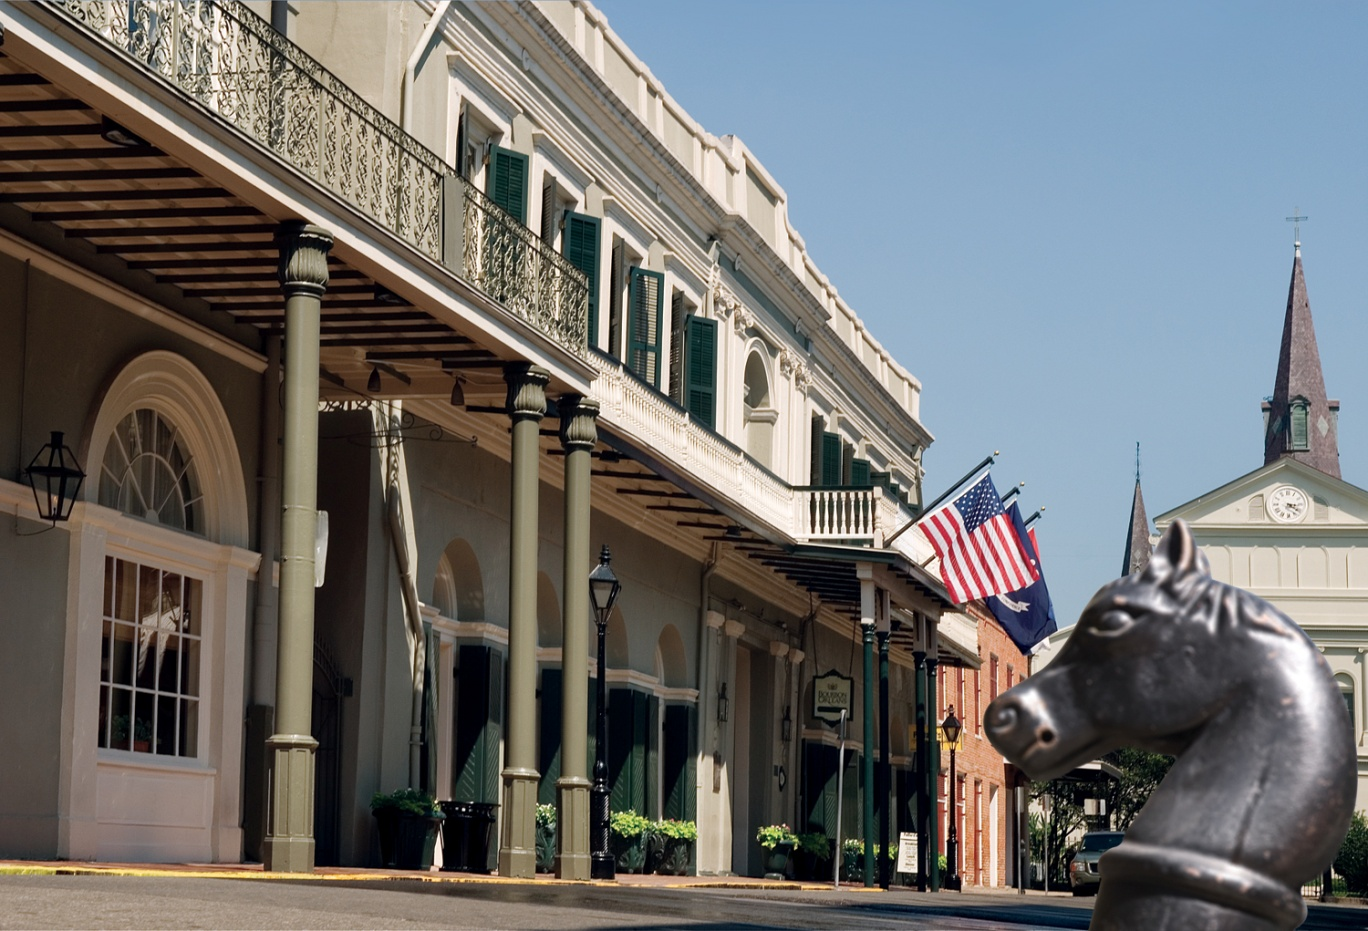 Street view of the Bourbon Hotel New Orleans